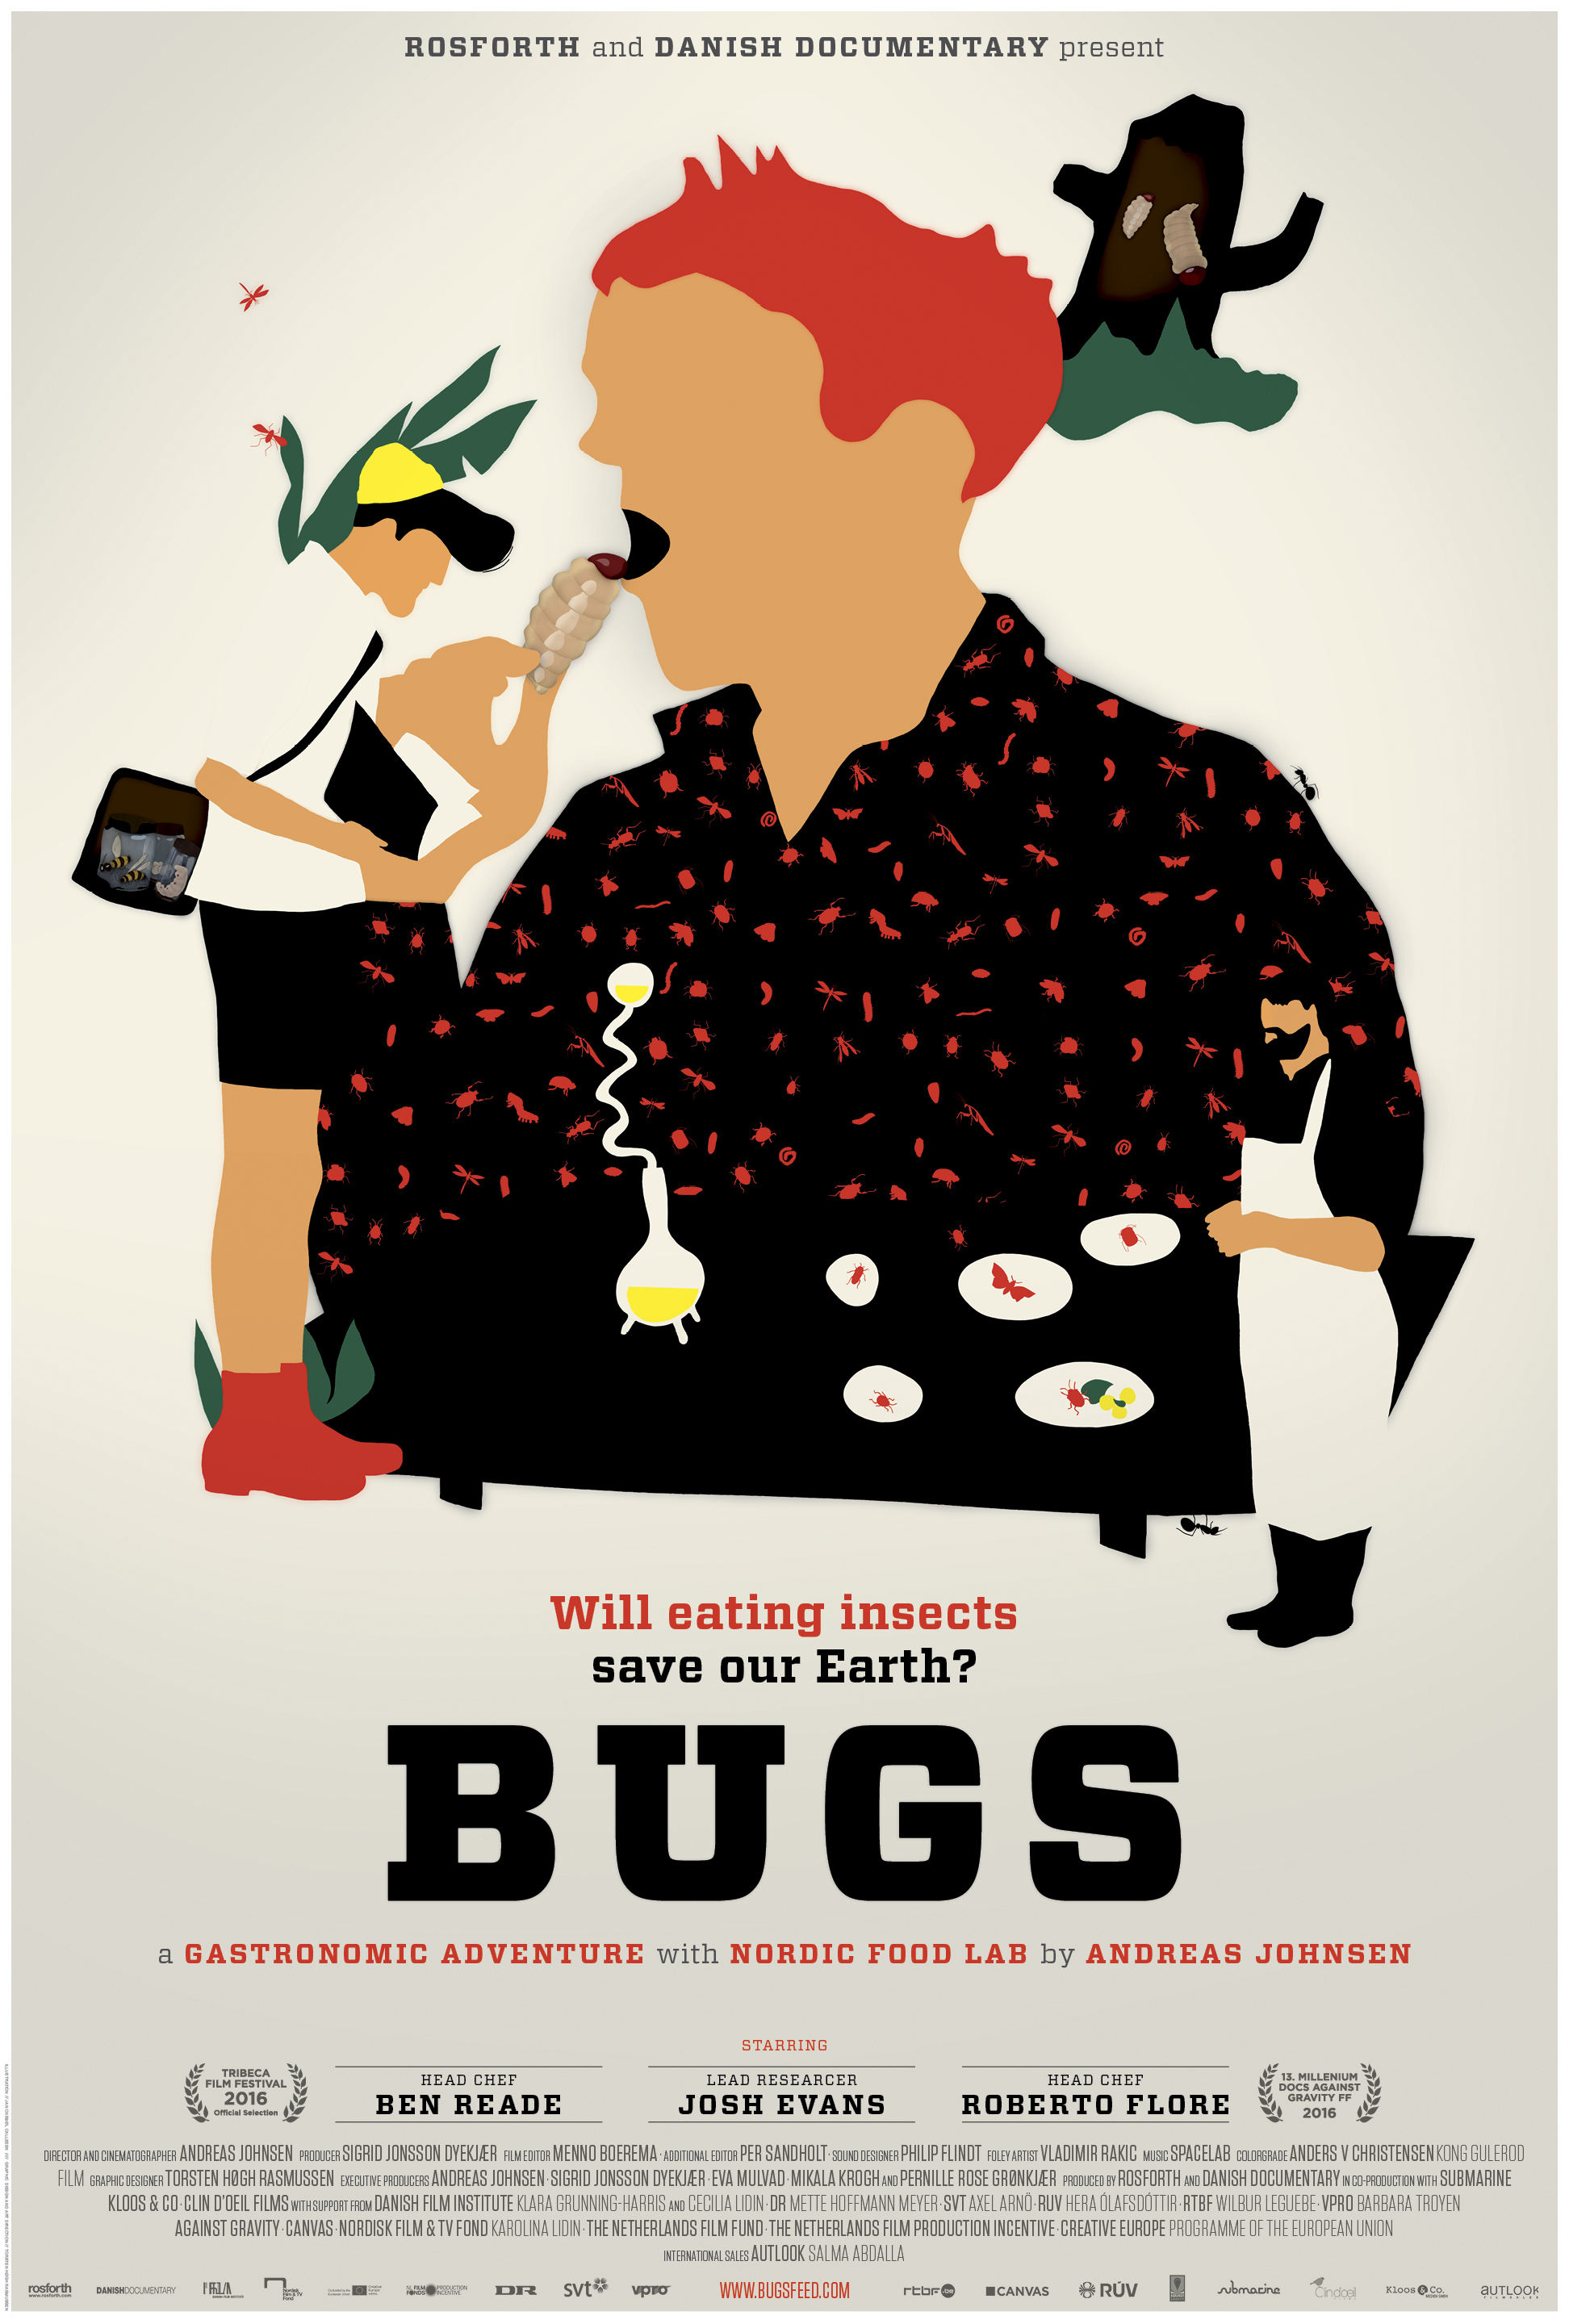 BUGS Documentary Poster